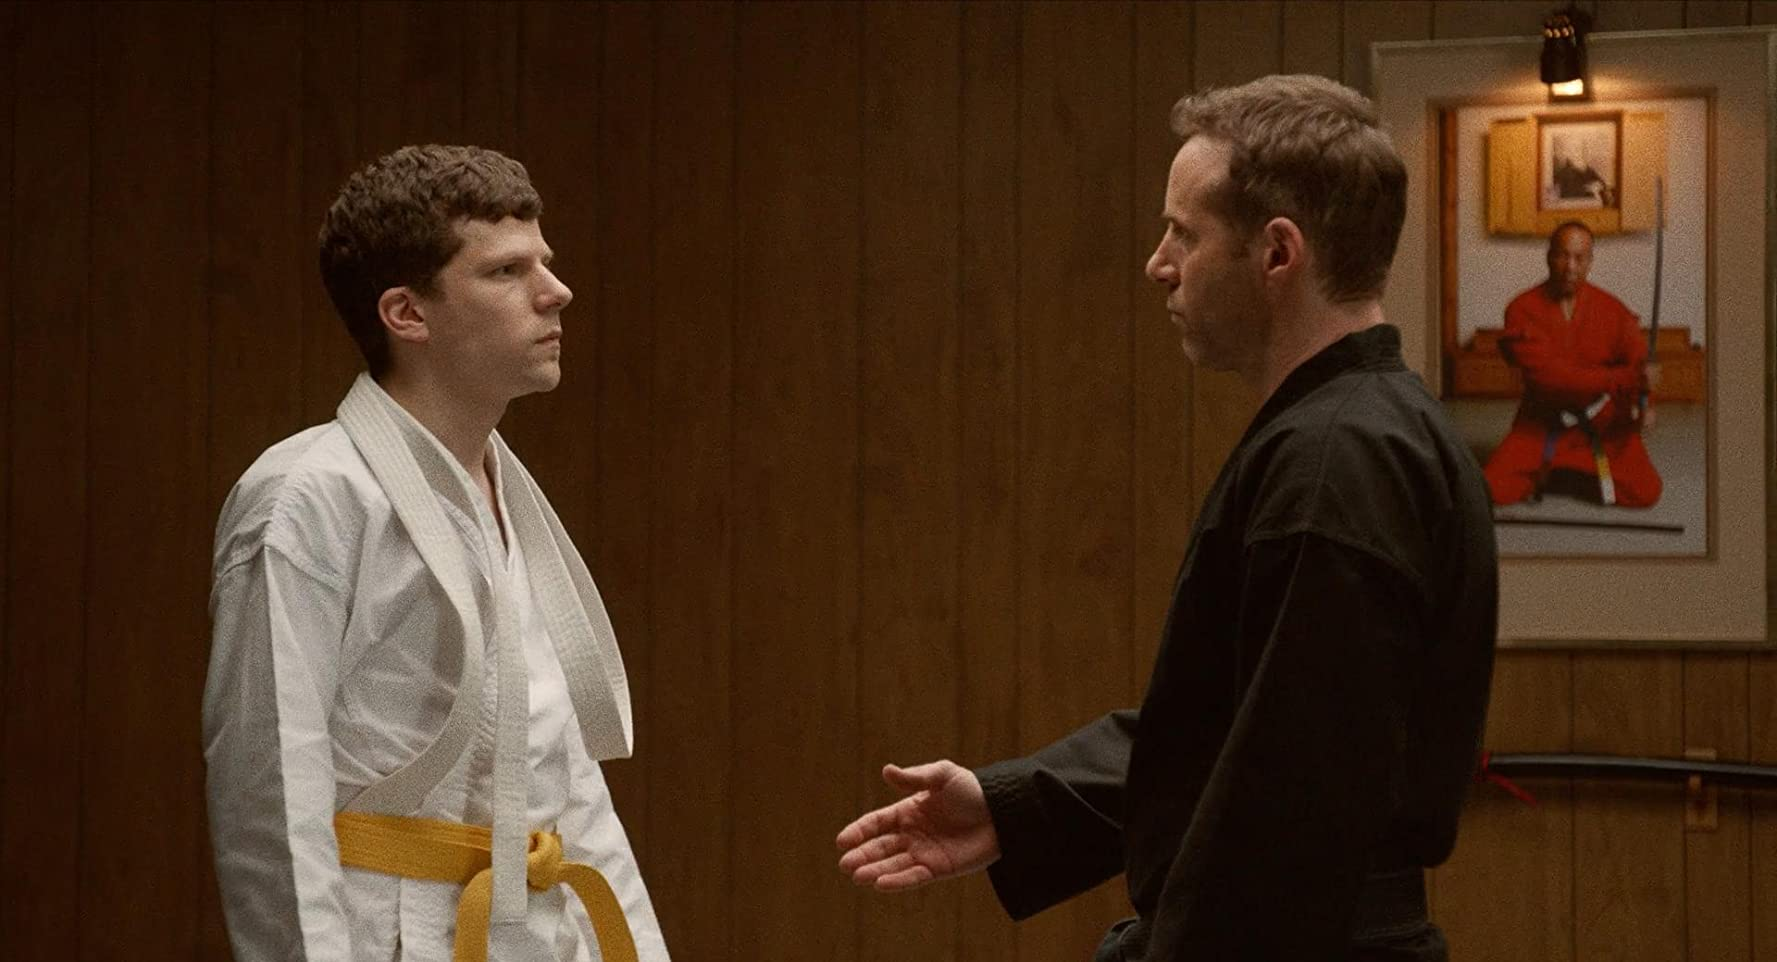 Alessandro Nivola and Jesse Eisenberg in The Art of Self-Defense (2019)